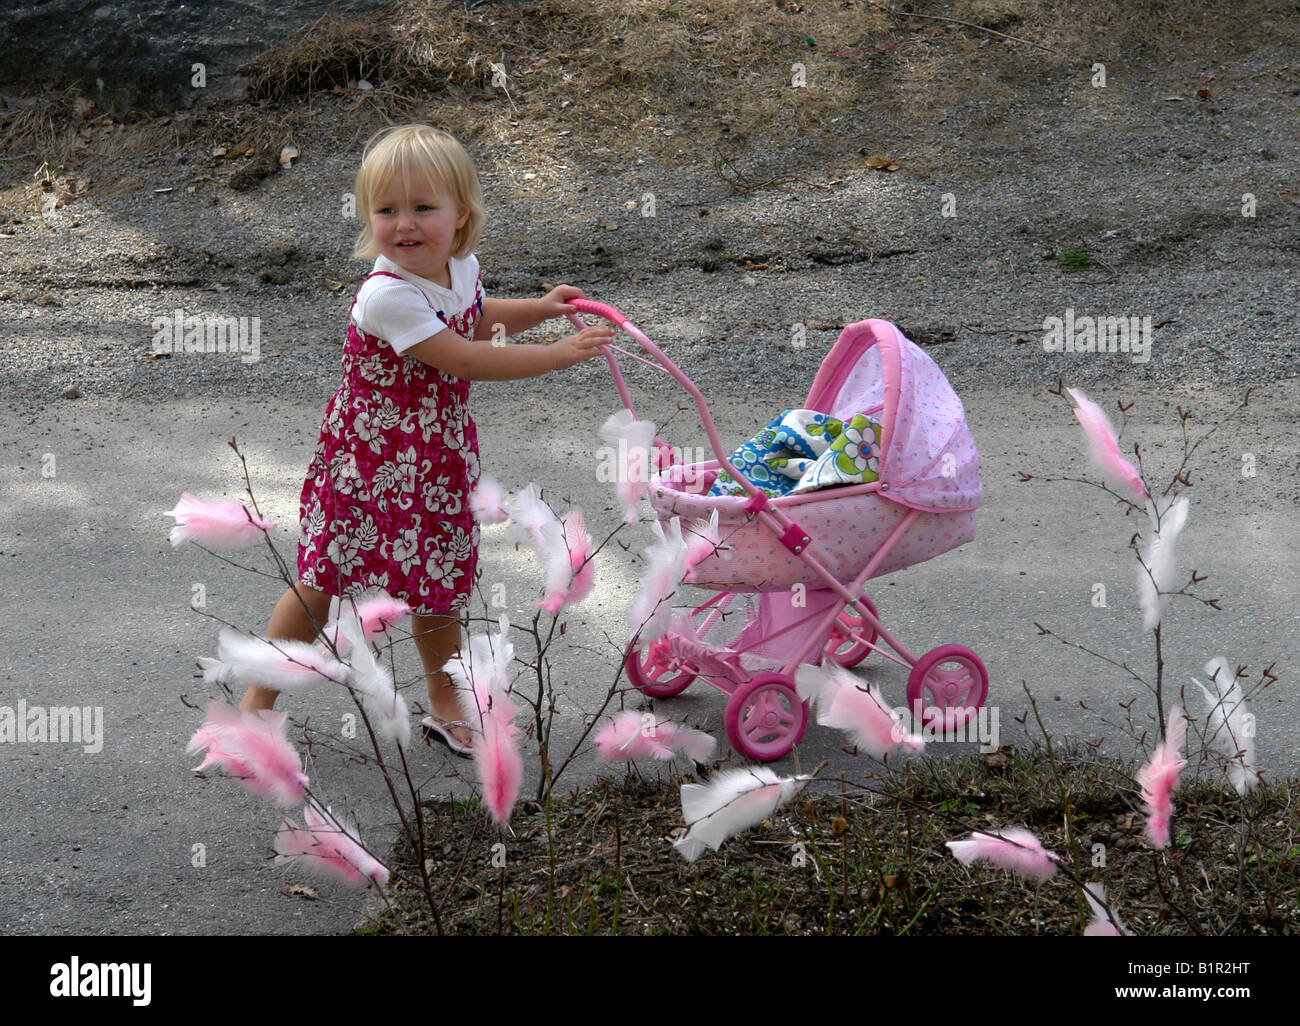 Small girl with dolls pram - Stock Image